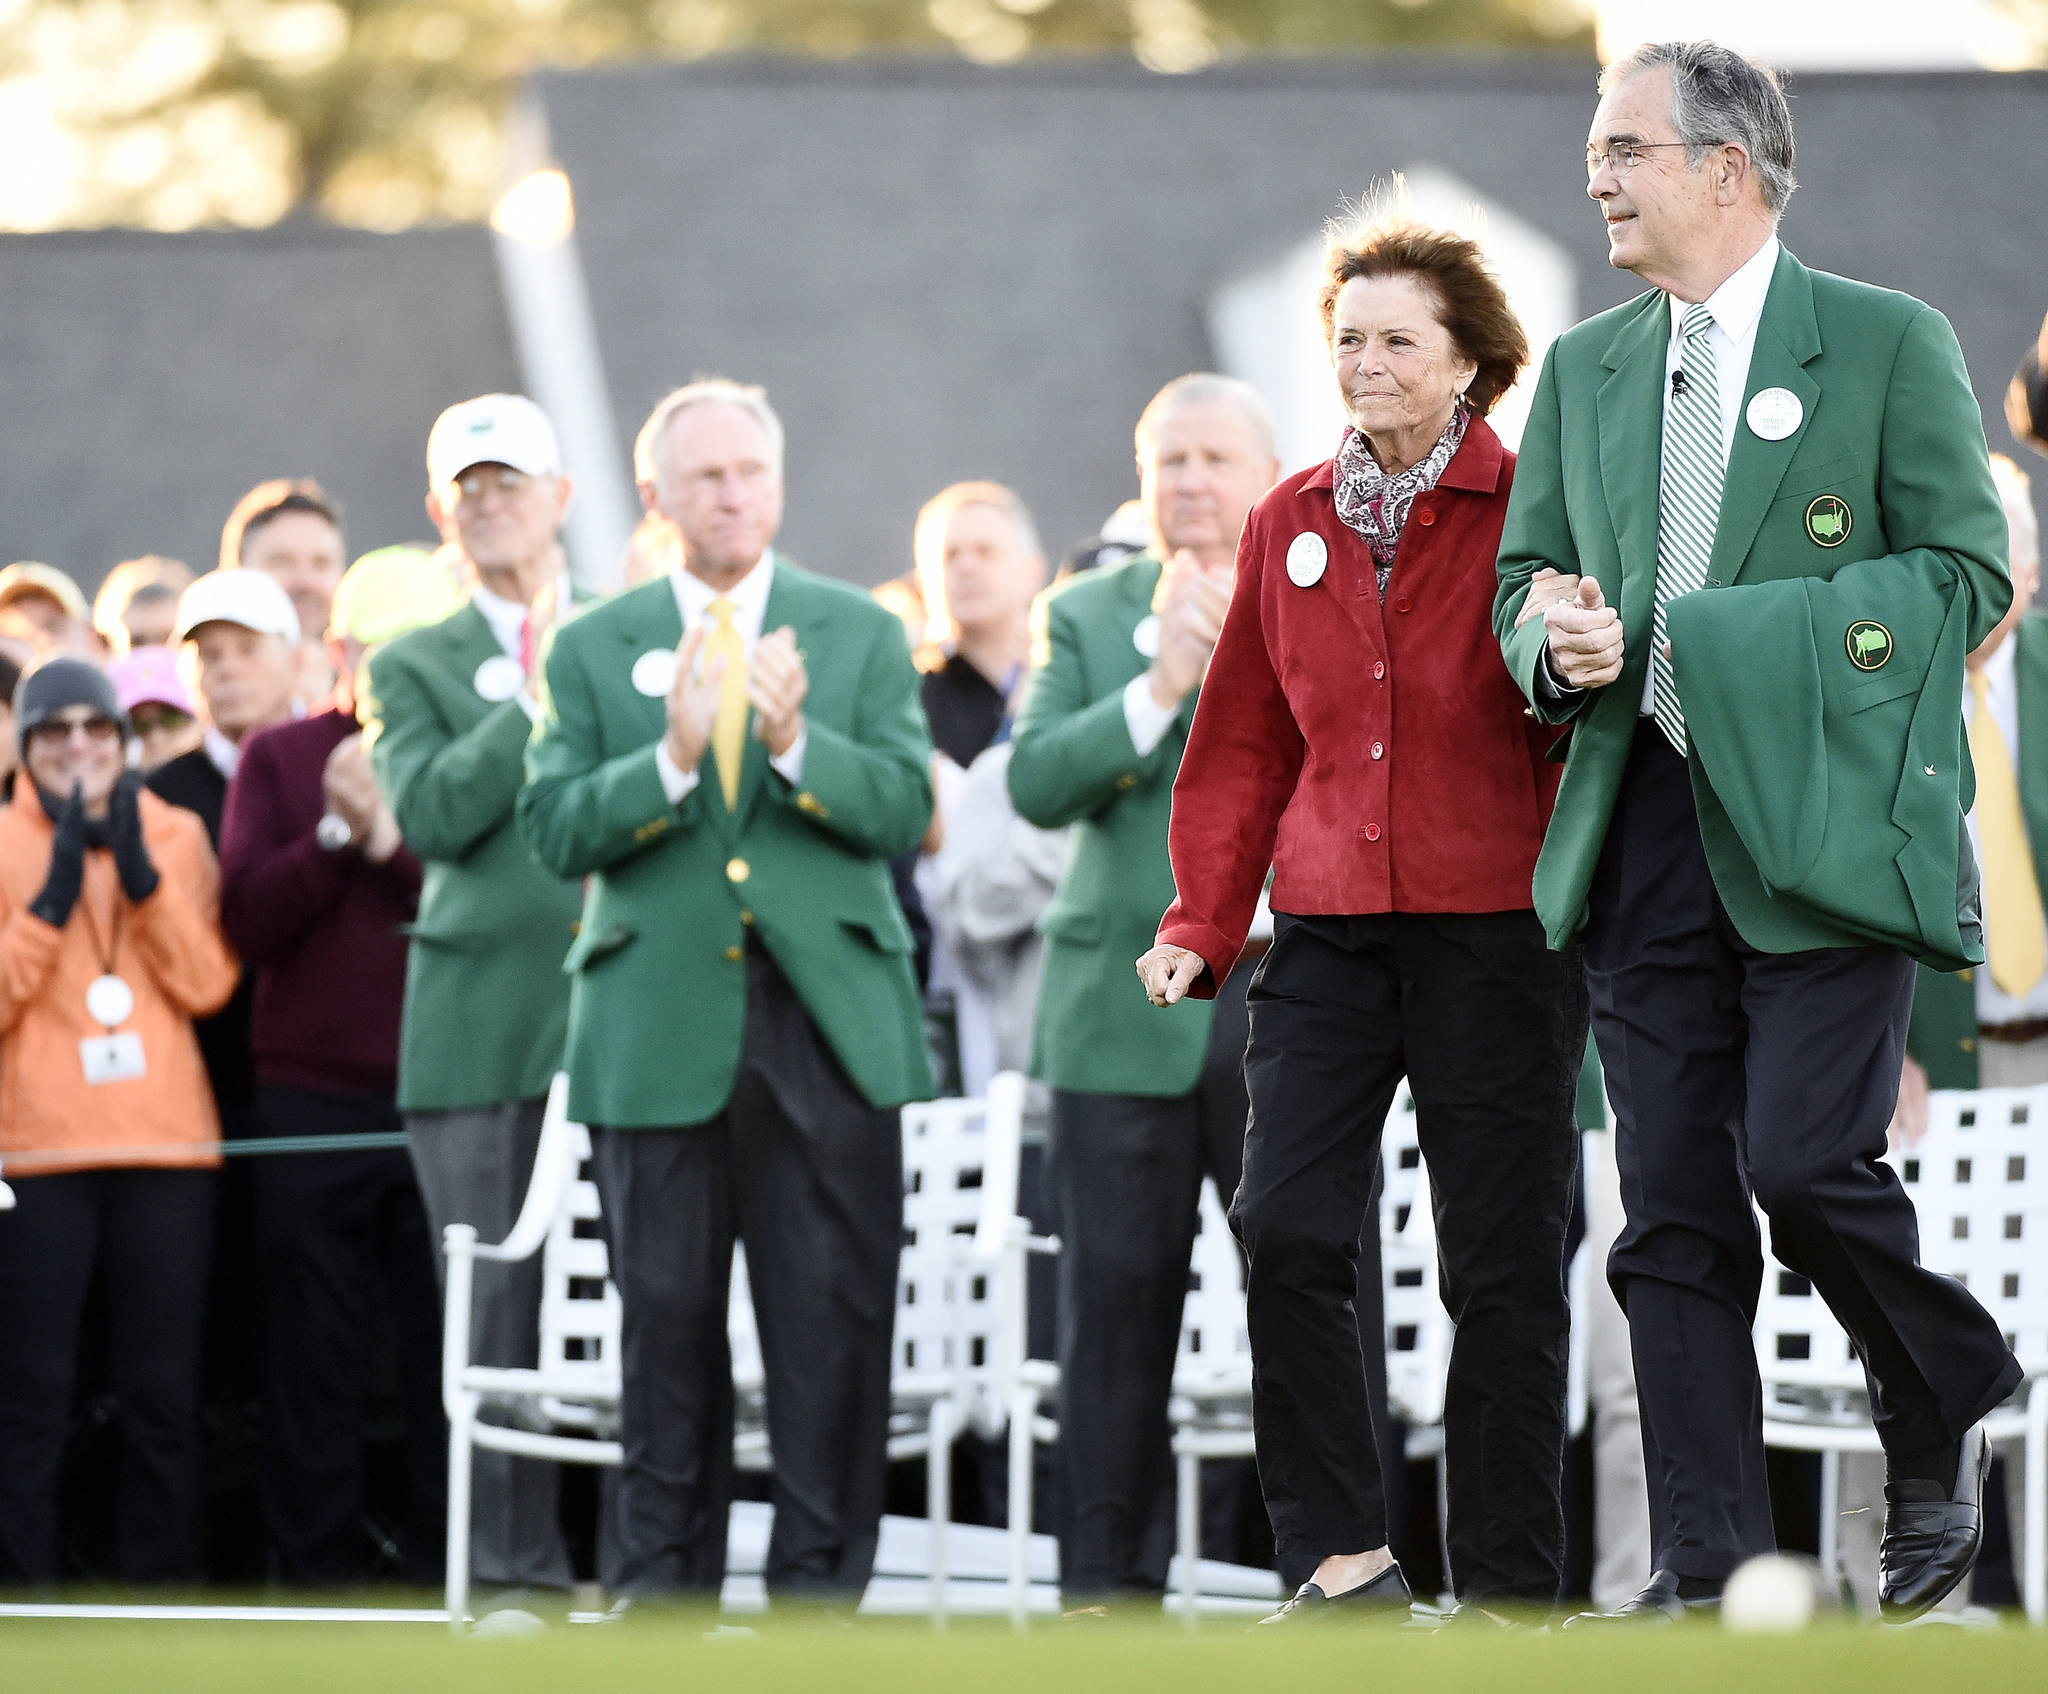 Palmer's legacy remembered during Honorary Starter ceremony